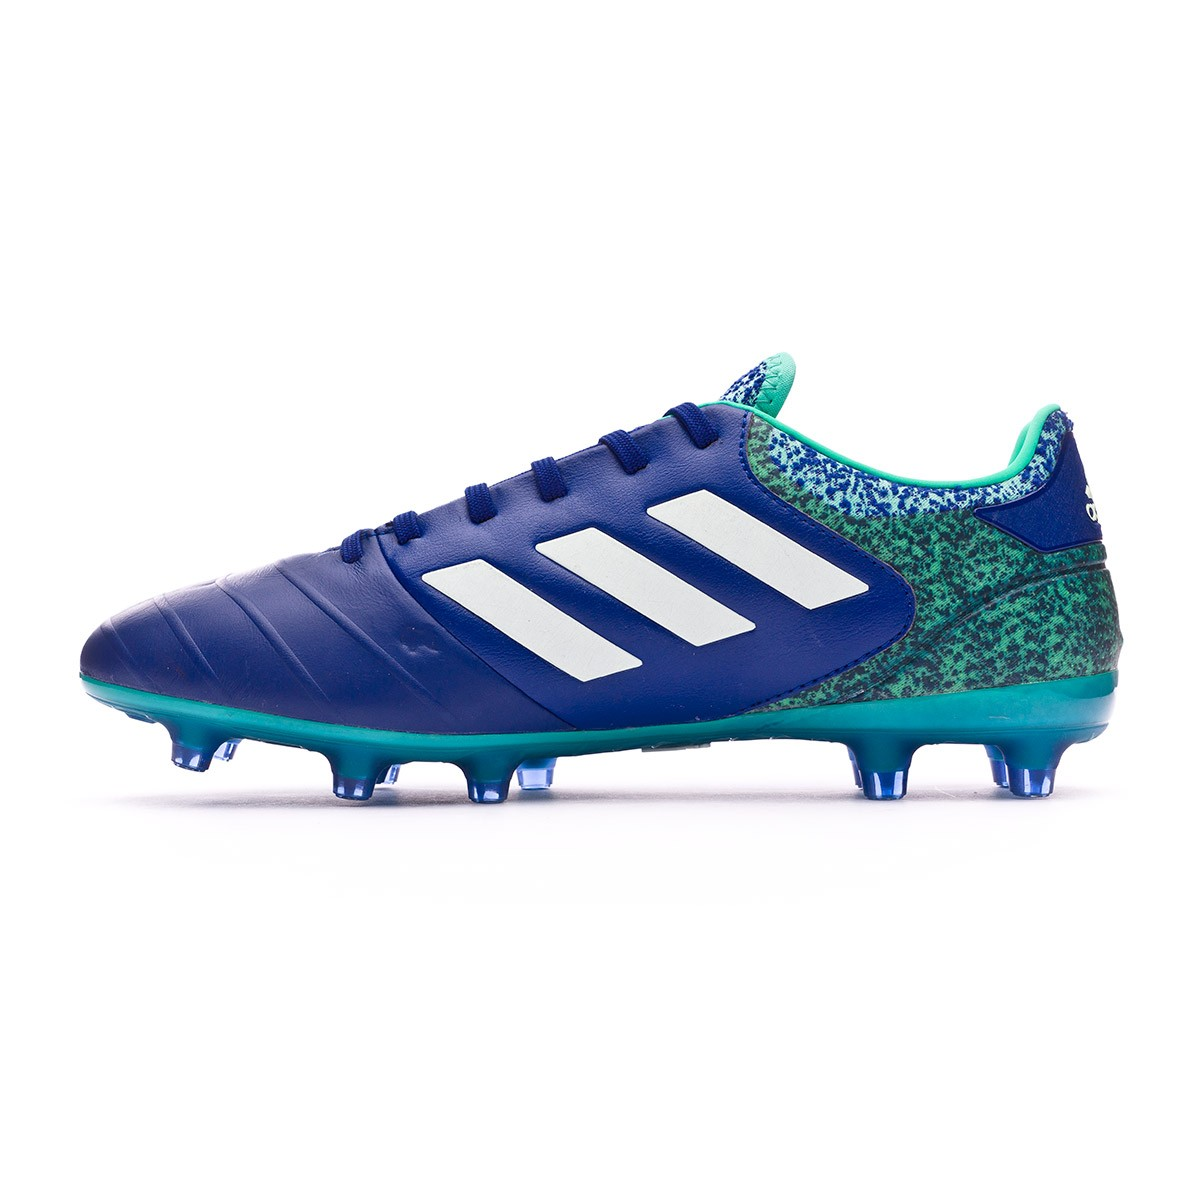 low priced e9d9a 89507 Boot adidas Copa 18.2 FG Unity ink-Aero green-Hi-res green - Football store  Fútbol Emotion